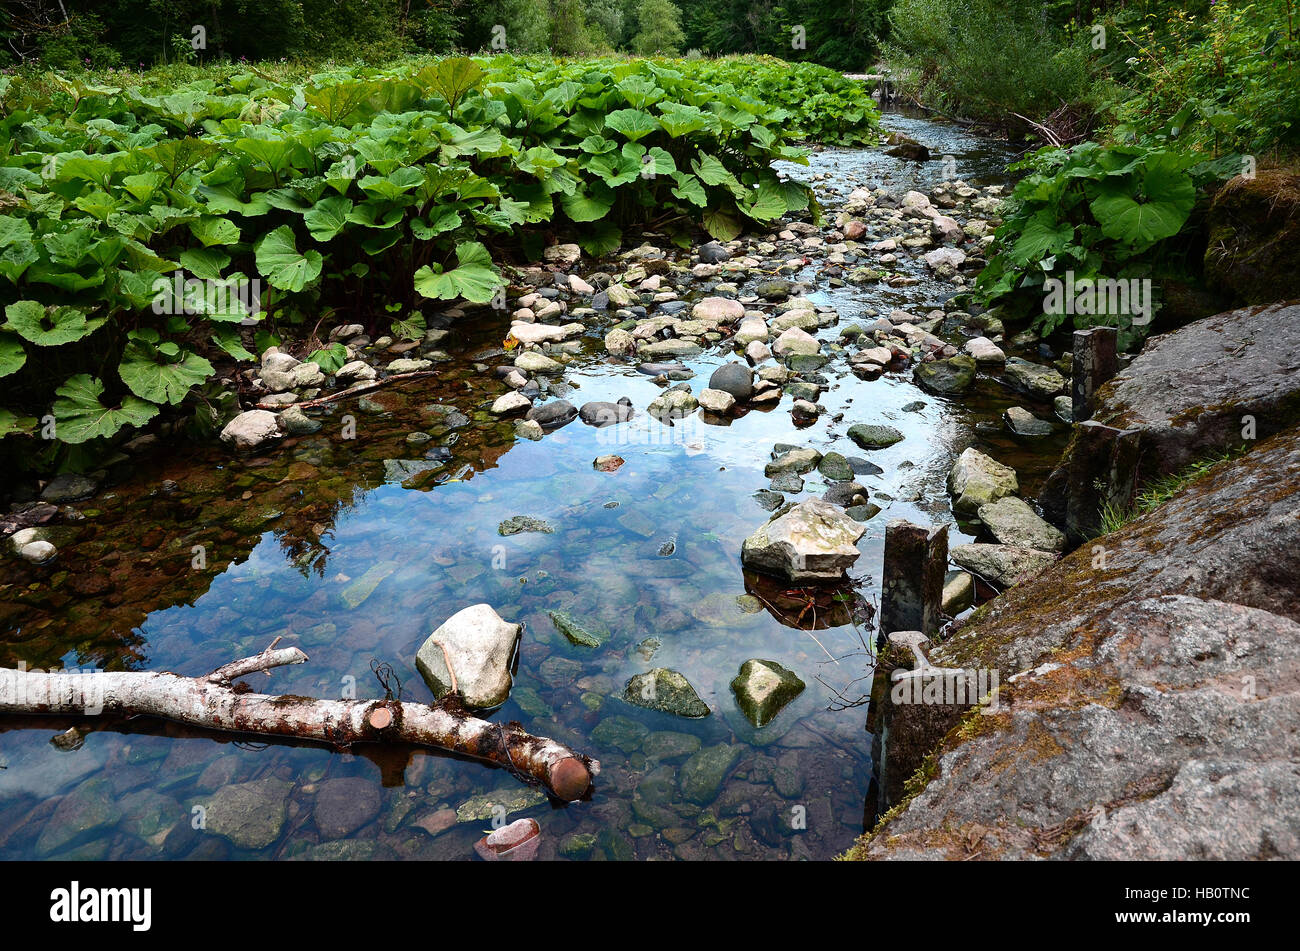 canyon; Wutach; Black forest; Germany; - Stock Image